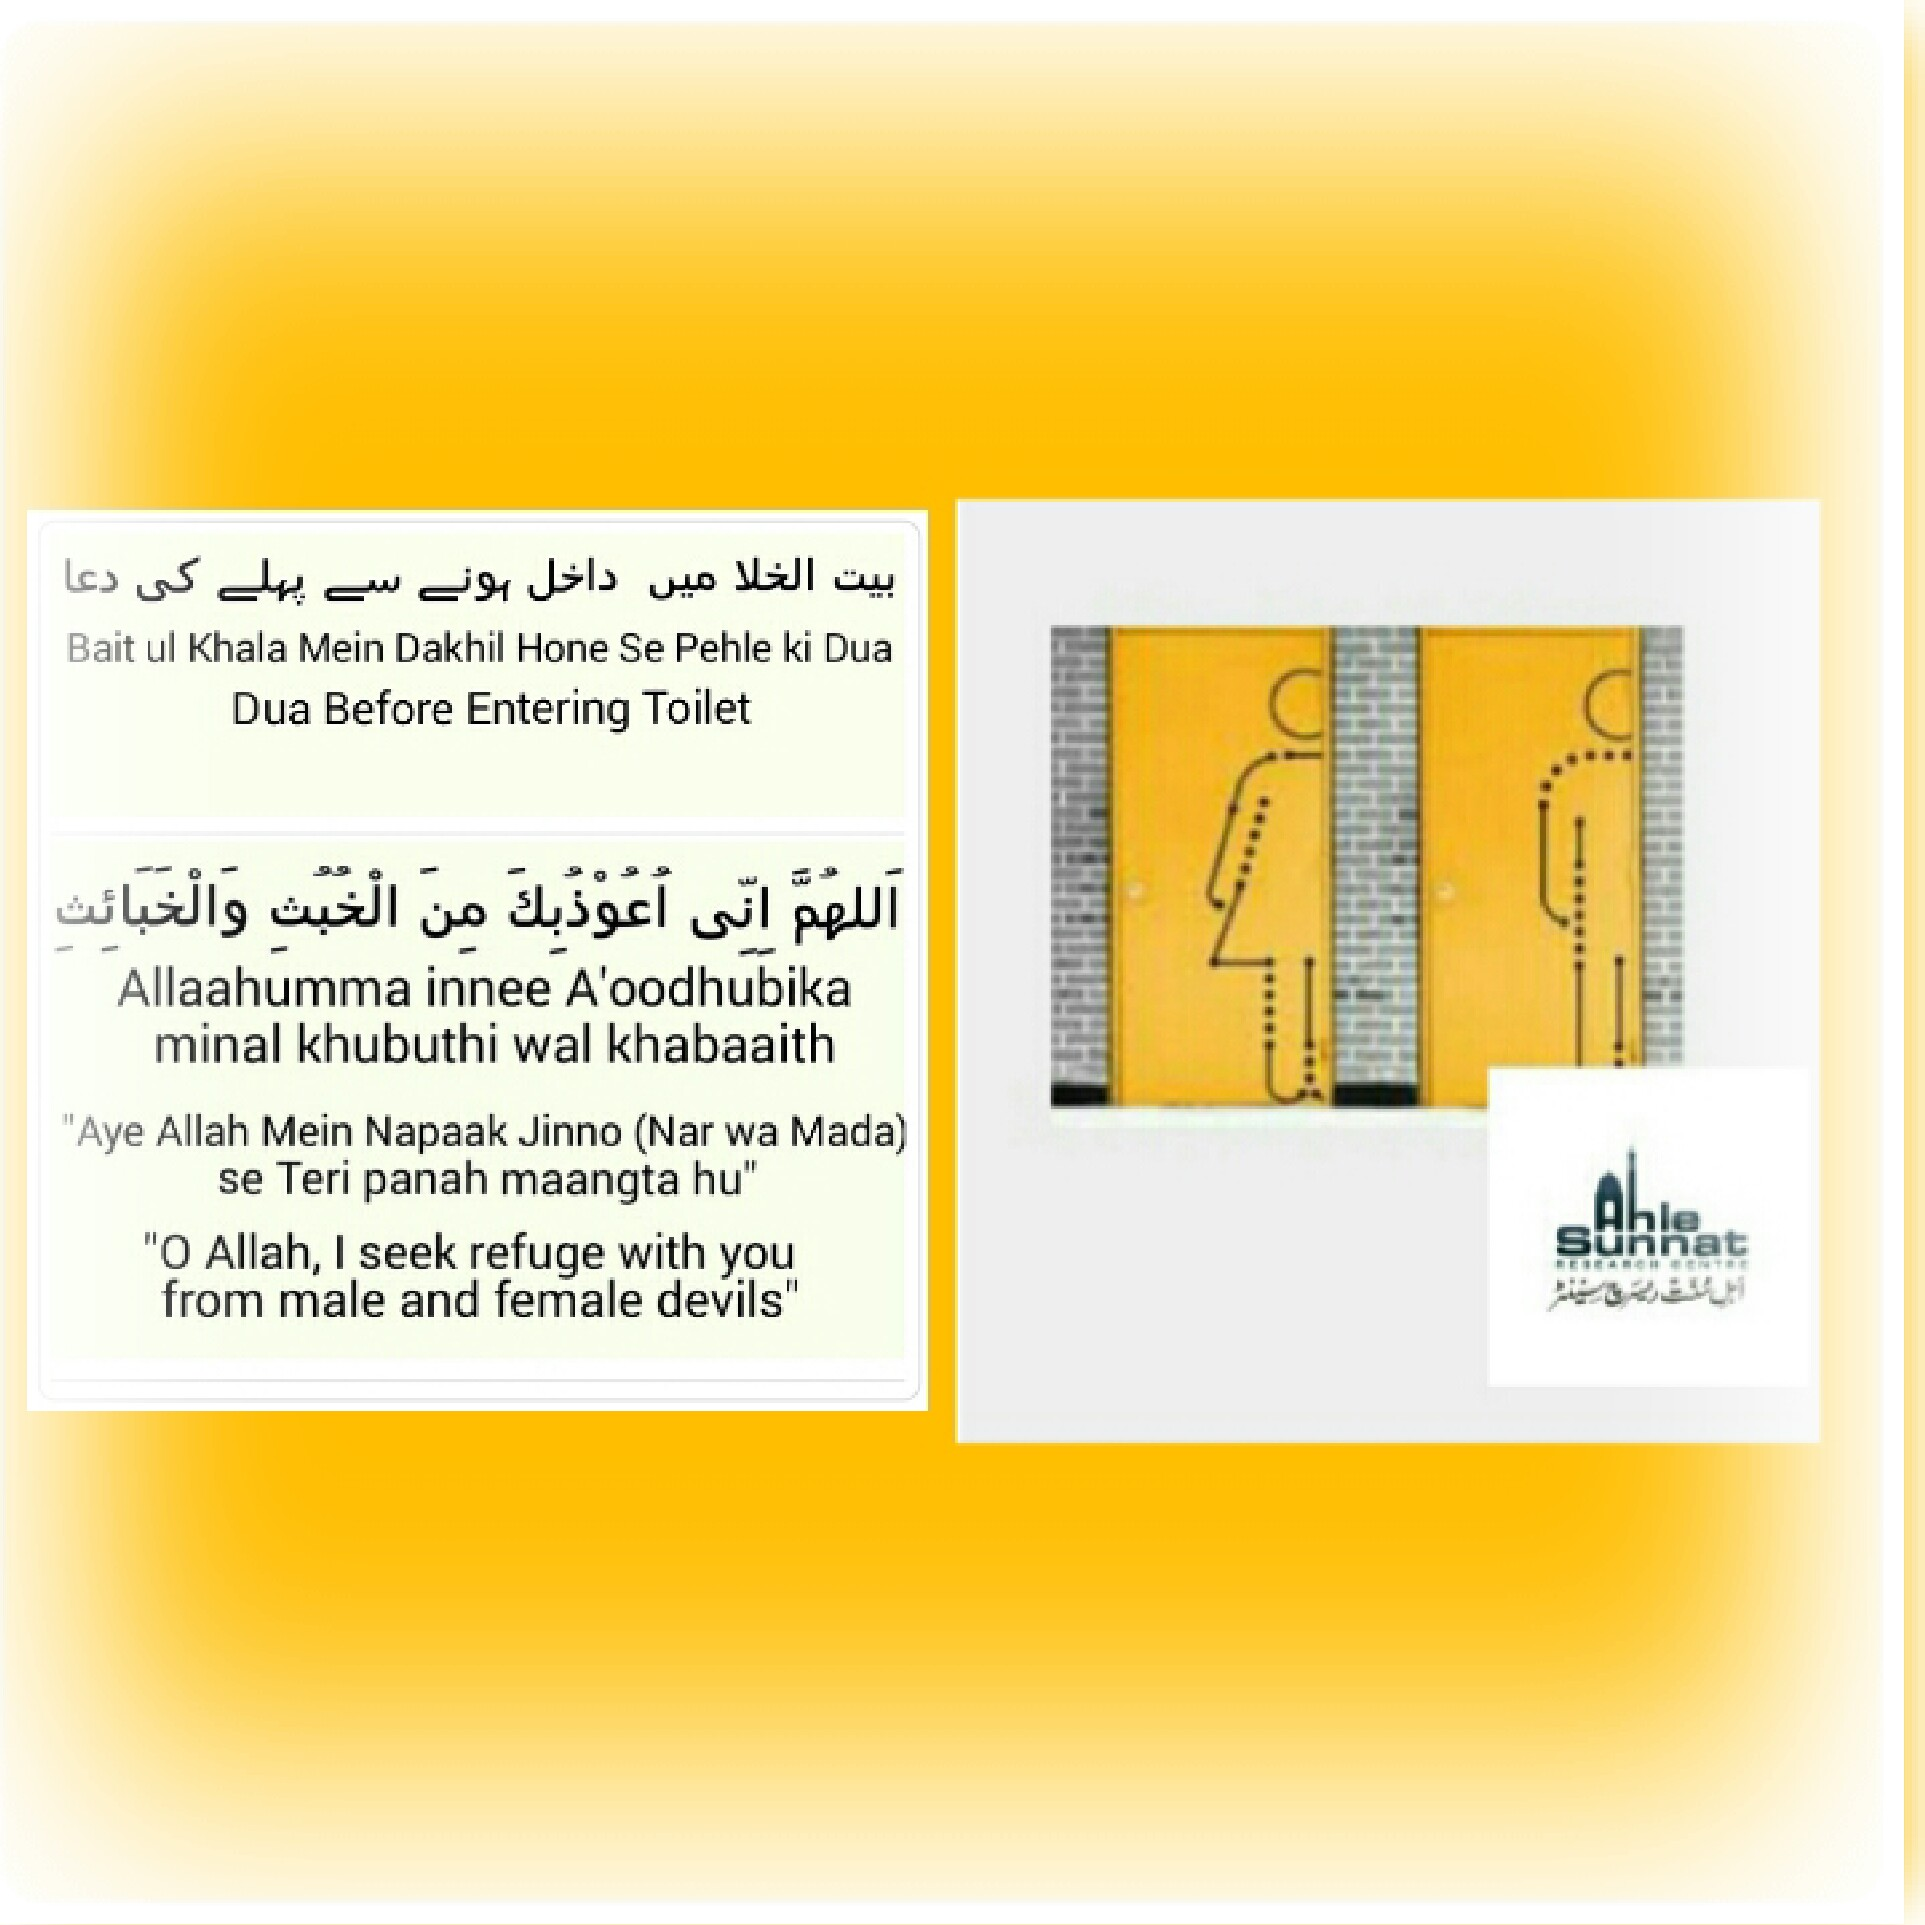 Bathroom Ki Dua entering bathroom dua | modelismo-hld